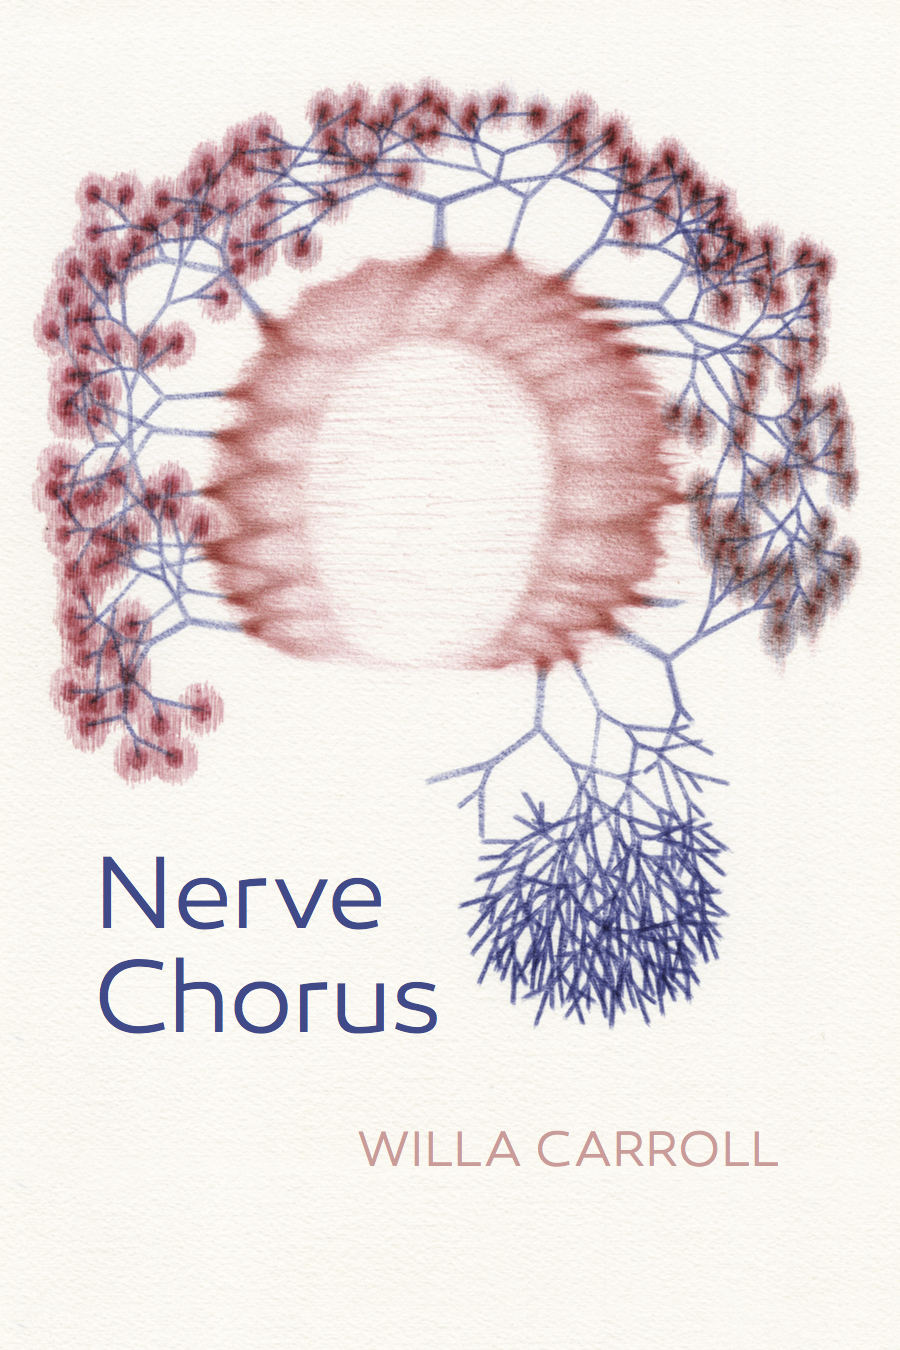 - Purchase Nerve Chorusfrom SPD.